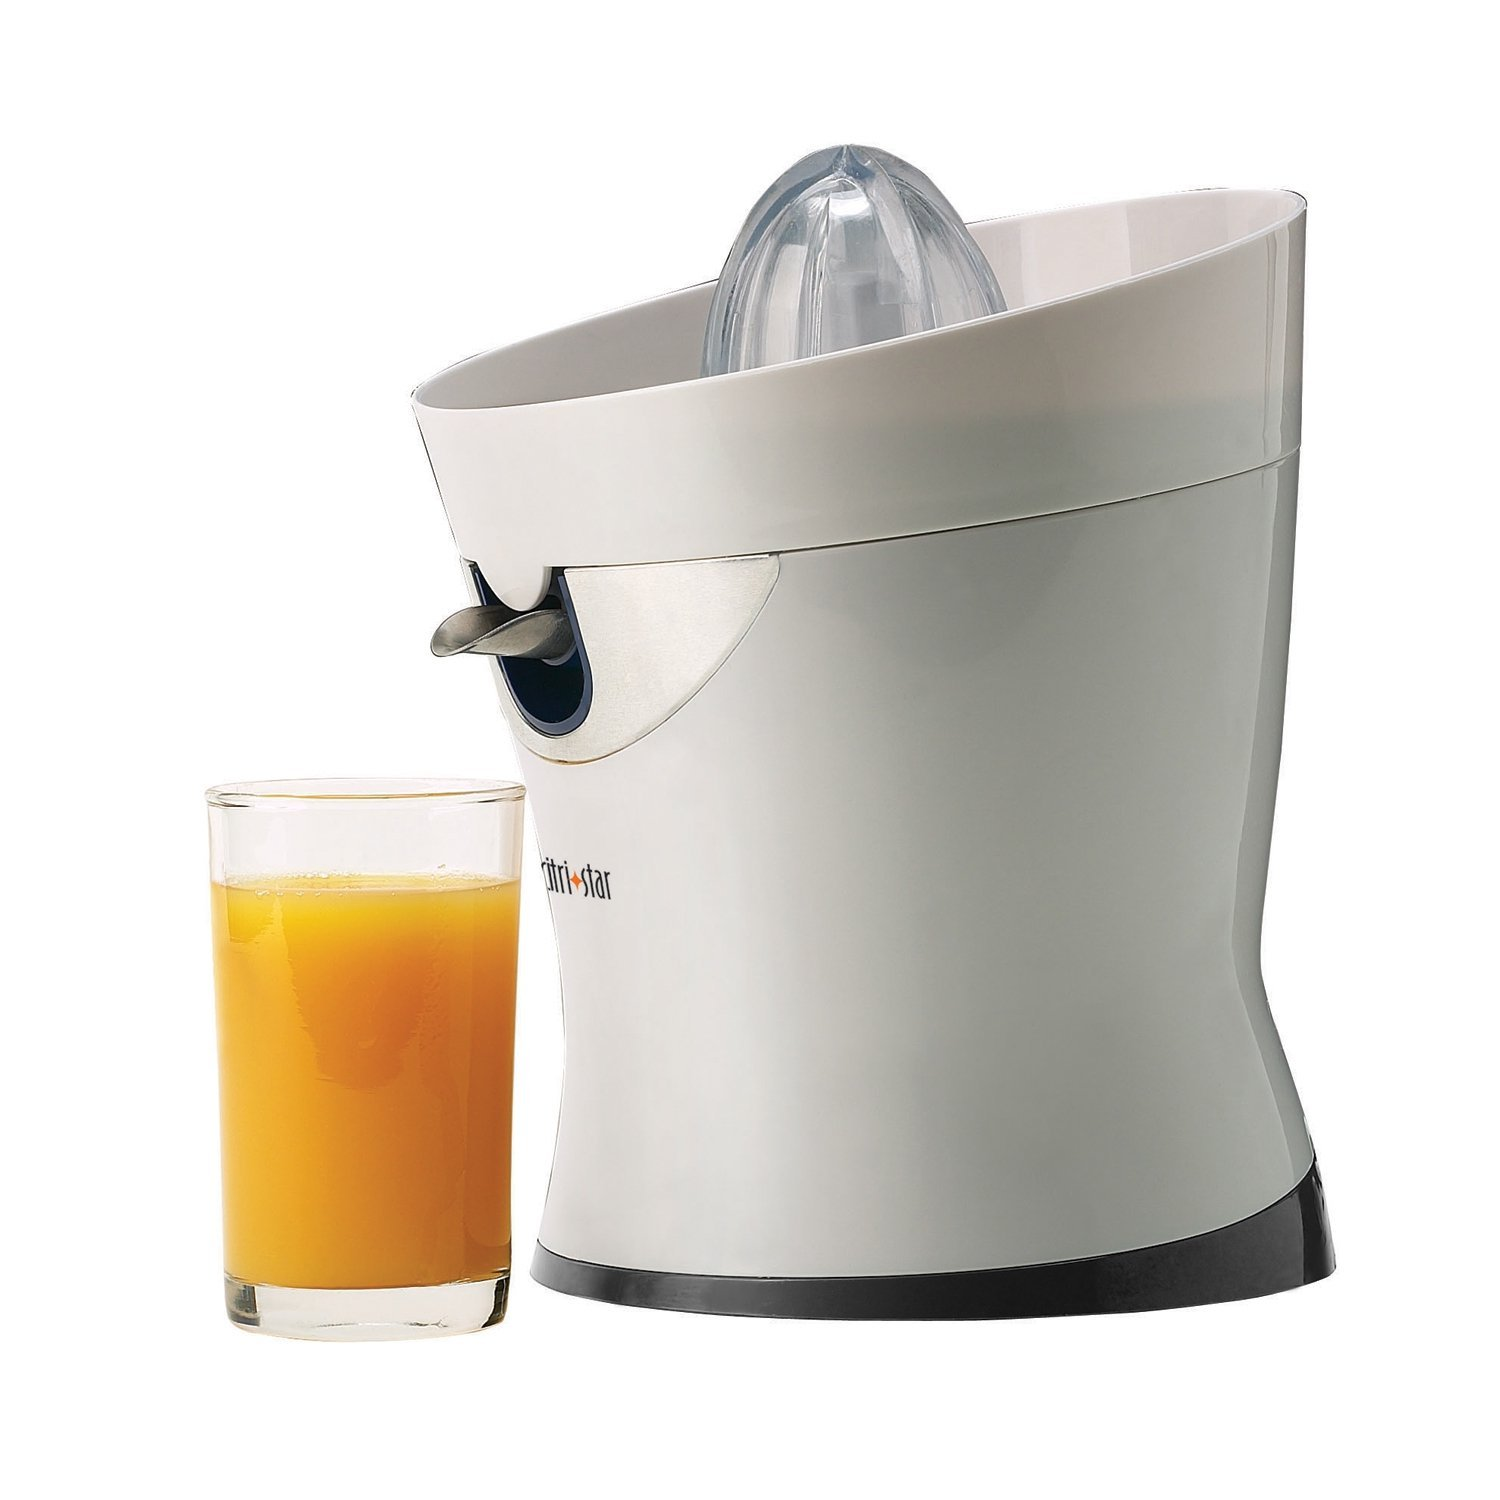 Citri Star Citrus Juicer with UK Plug, 85 W, White Tribest CS-1000